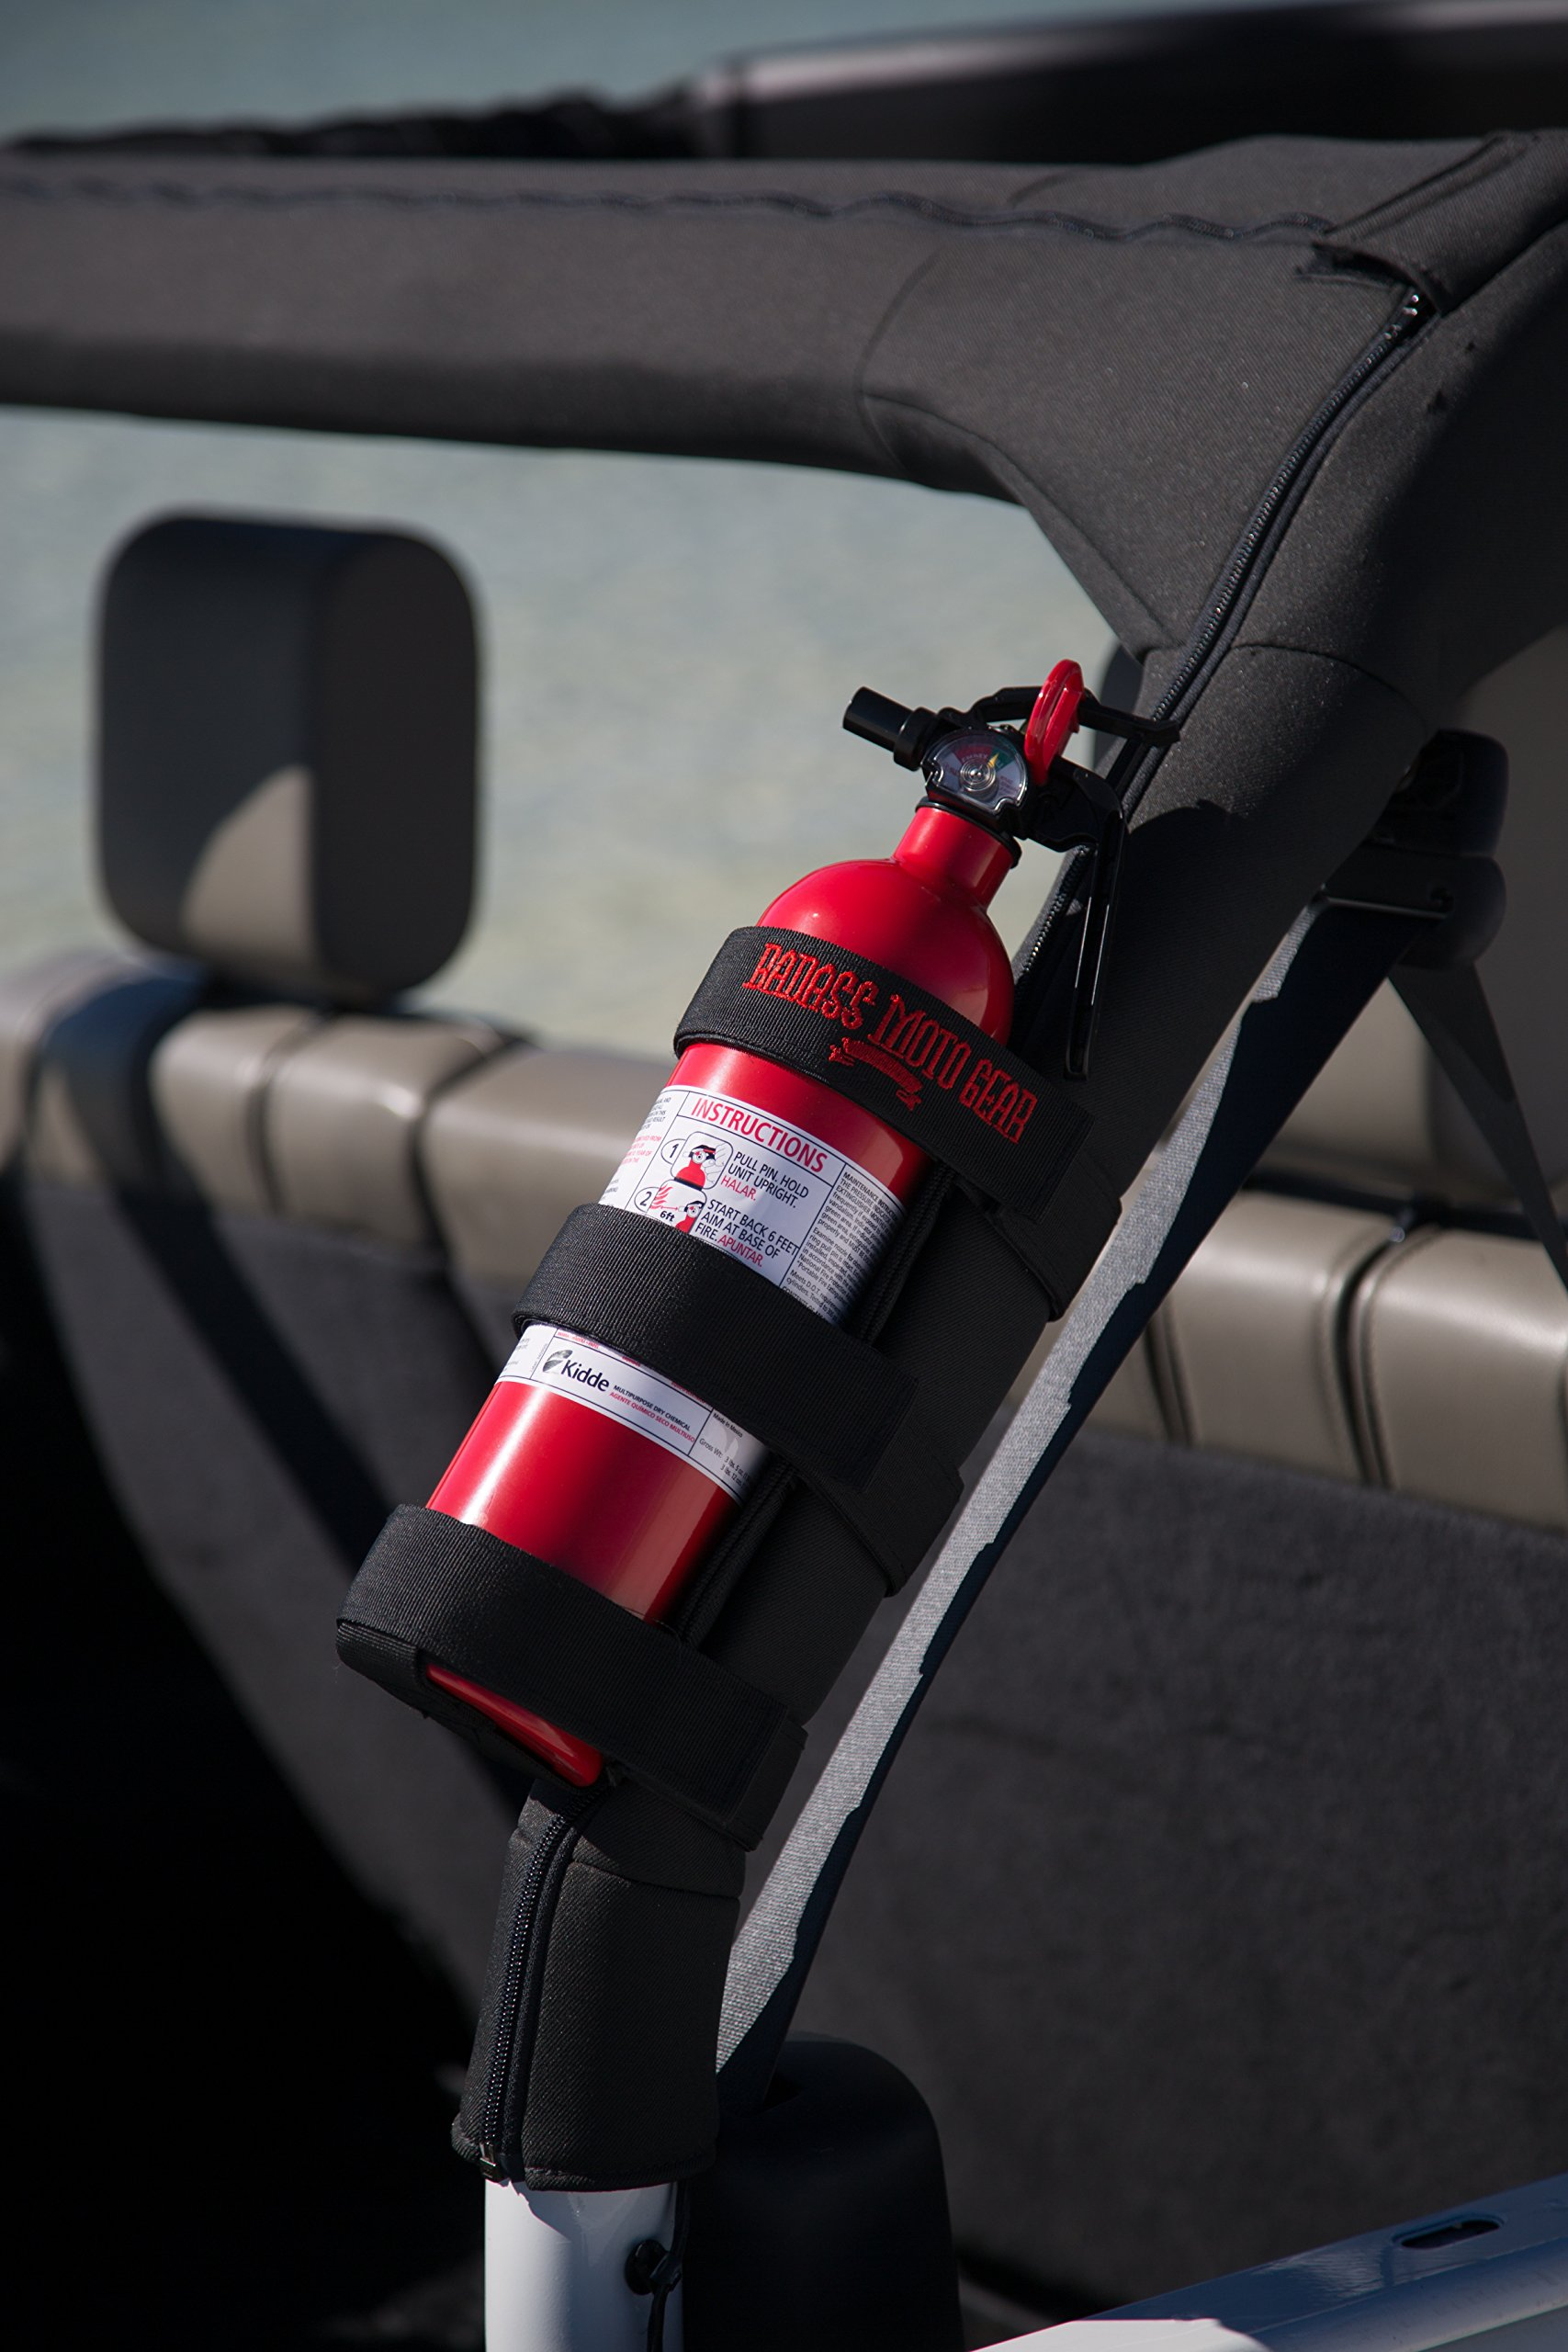 Badass Moto Gear Adjustable Roll Bar Fire Extinguisher Holder for Jeeps – Durable Stitching. Easy Install. for Jeep Wrangler, Unlimited, CJ, JK, TJ, Rubicon, Sahara, Sport. Extinguisher not Included. by Badass Motogear (Image #4)